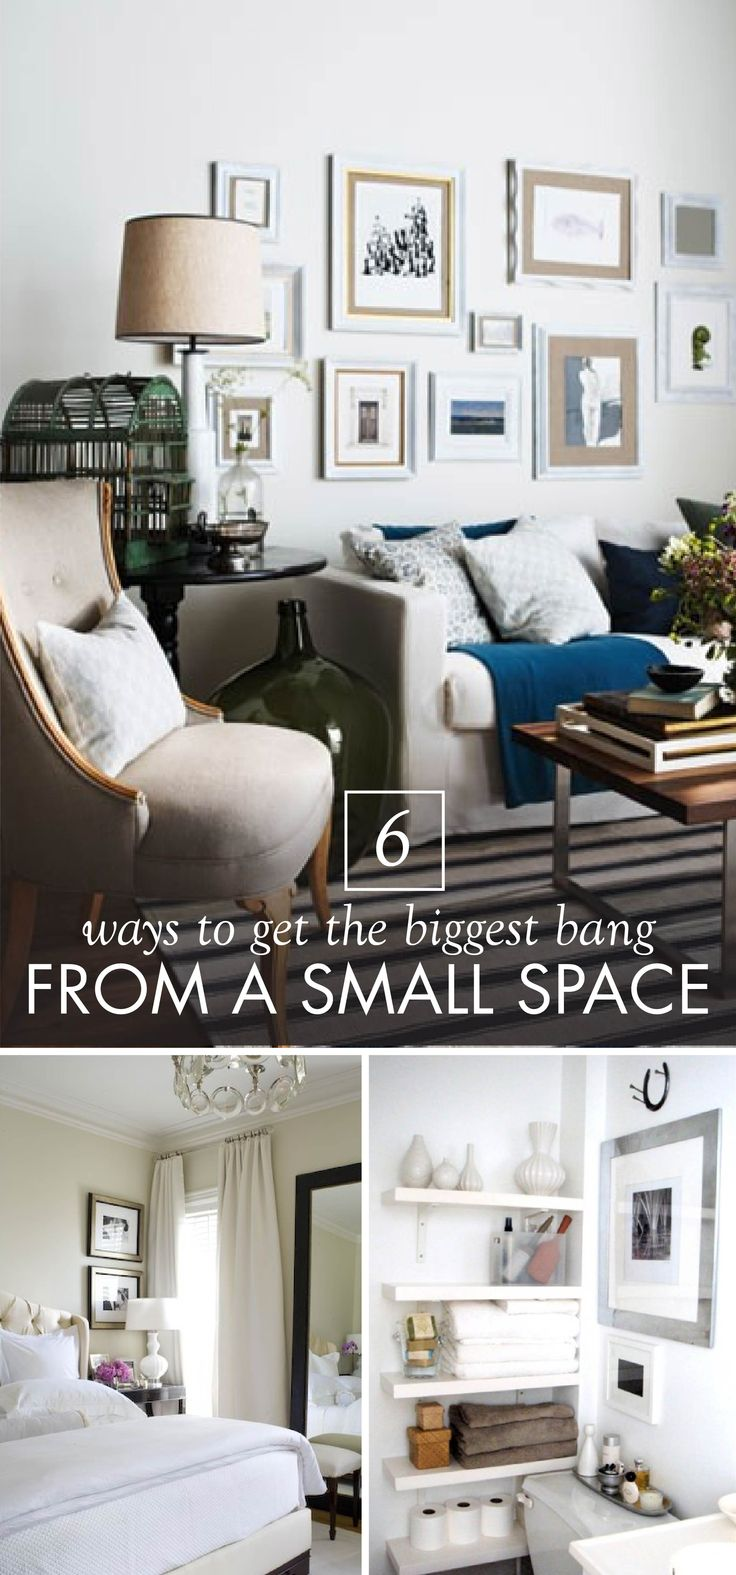 213 best Small Space Style images on Pinterest | Small spaces ...